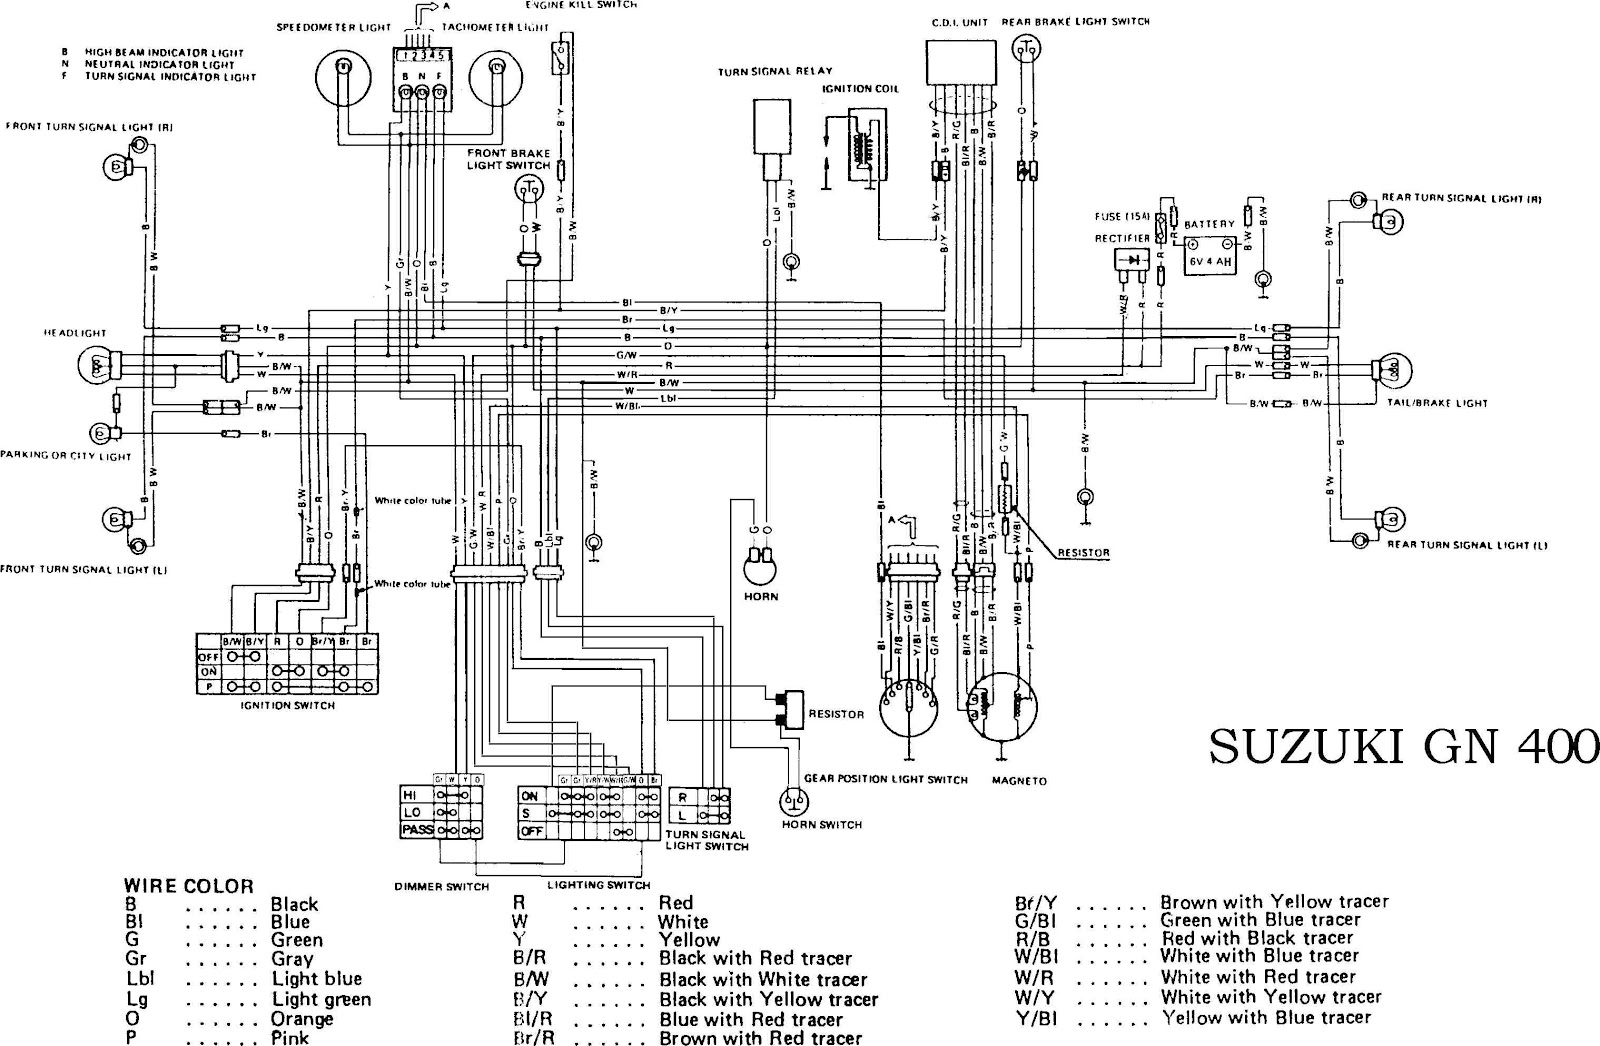 Suzuki+GN400+motorcycle+Complete+Electrical+Wiring+Diagram?resize\=665%2C435 suzuki gn 125 wiring diagram suzuki 125 three wheeler \u2022 wiring suzuki en 125 wiring diagram at bakdesigns.co